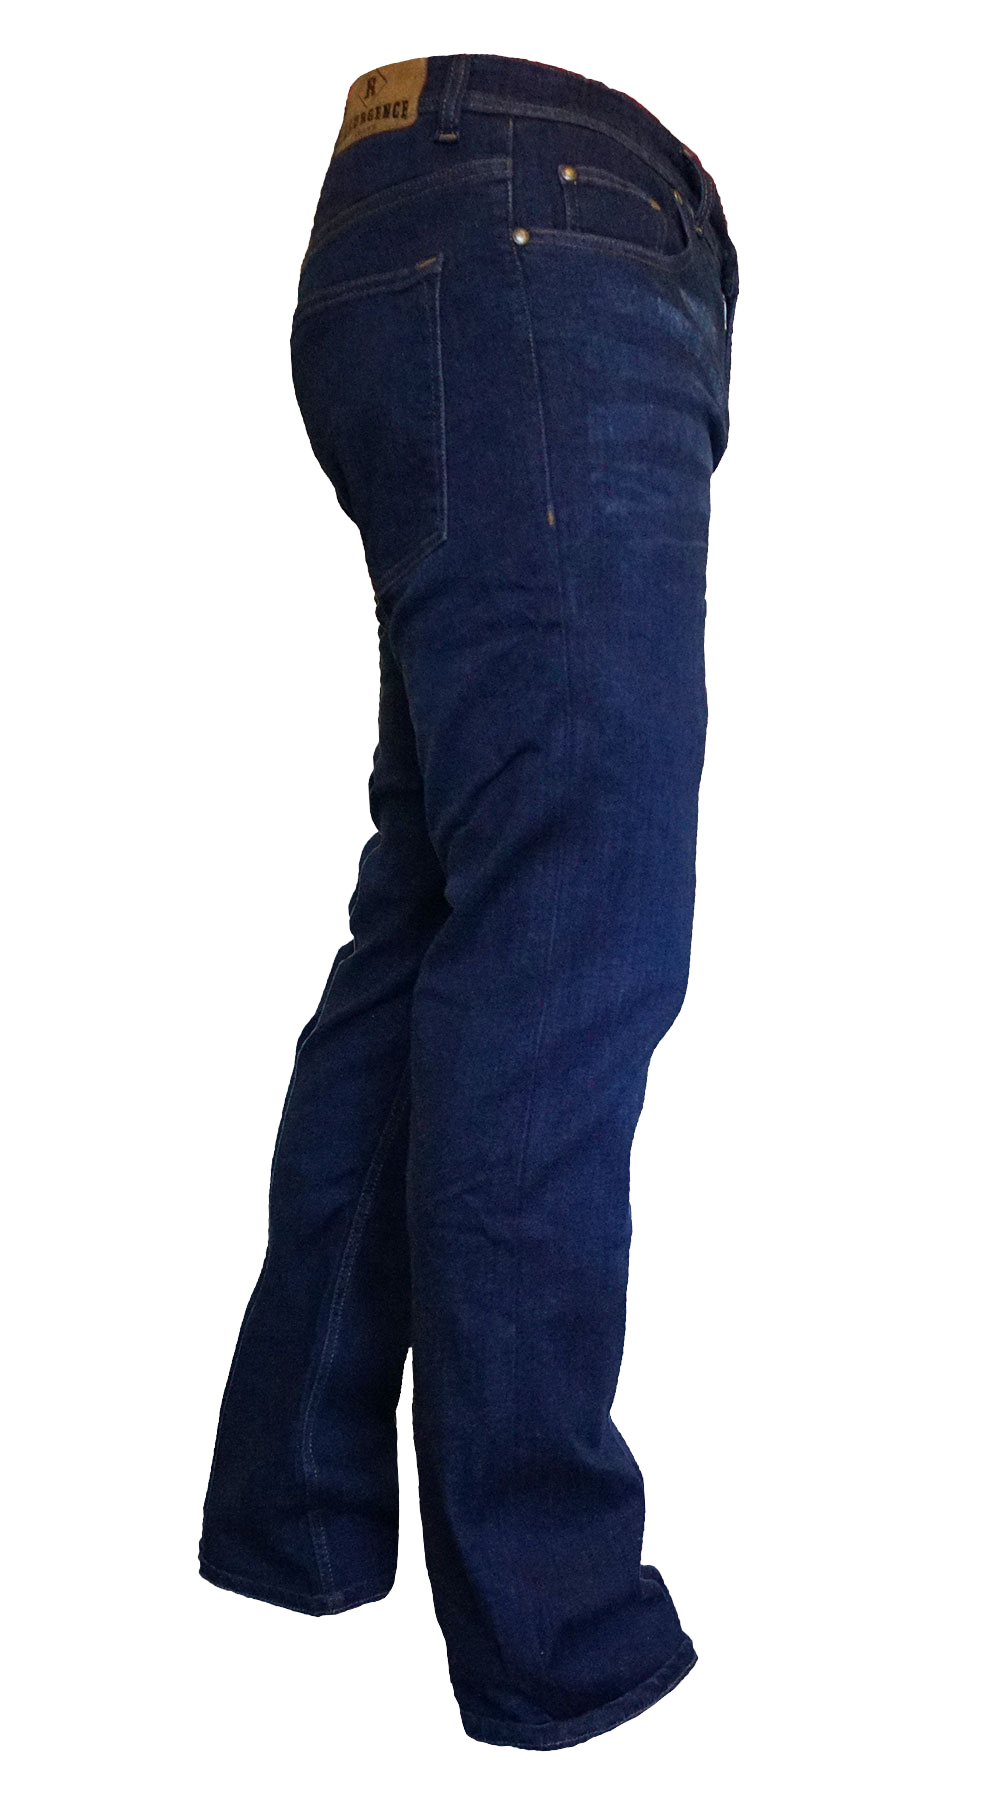 PEKEV lite jeans - protective motorcycle clothing - Side 1